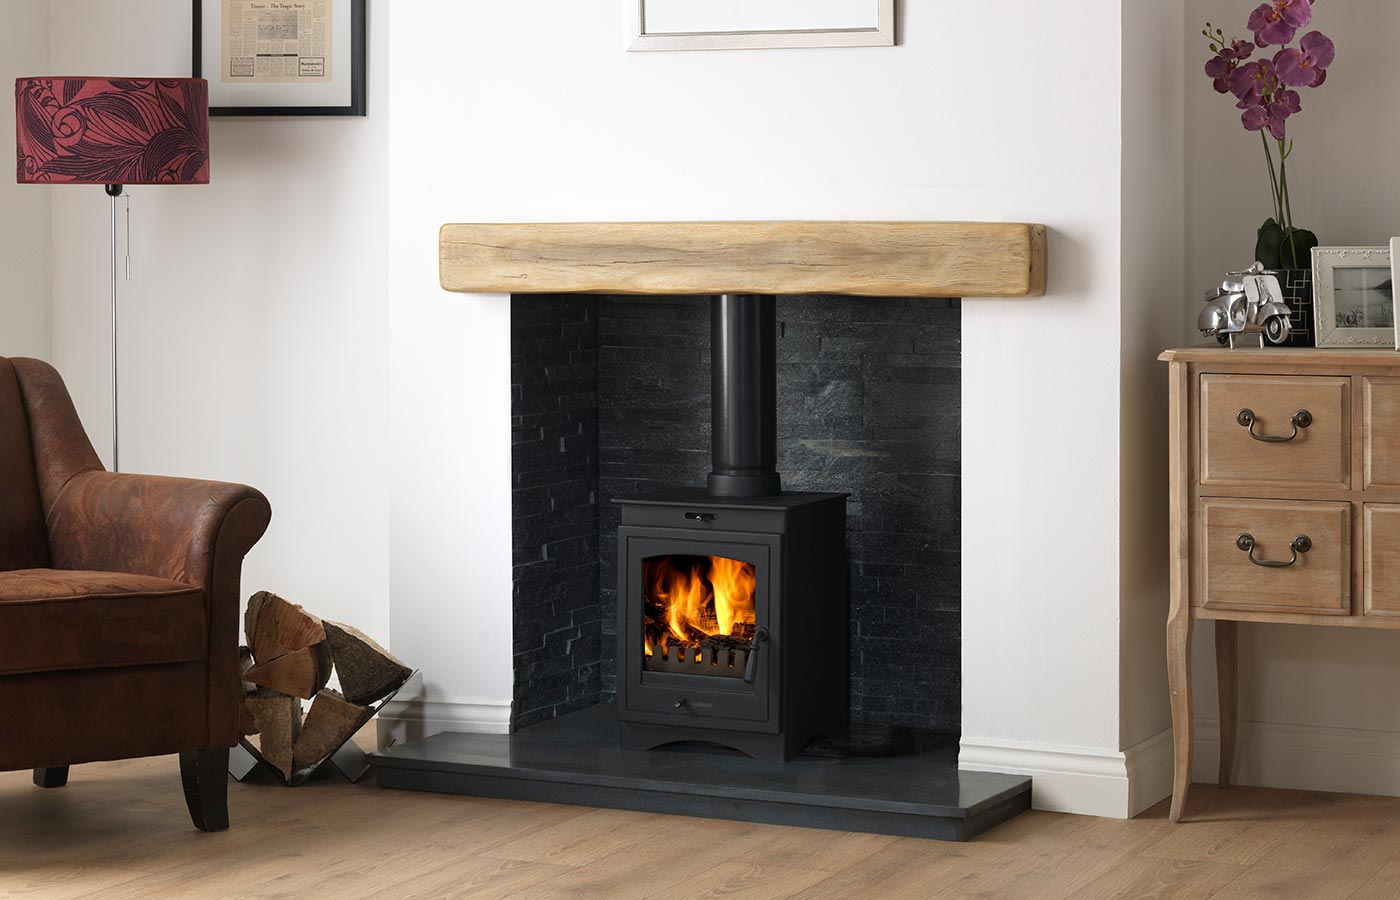 "Helios 5 Clean Burn Stove Shown with Staggered Black Slate Block Chamber, 48"" Slabbed Honed Granite Hearth & Back Hearth and 48"" Rustic Light Oak Effect Geocast Beam"